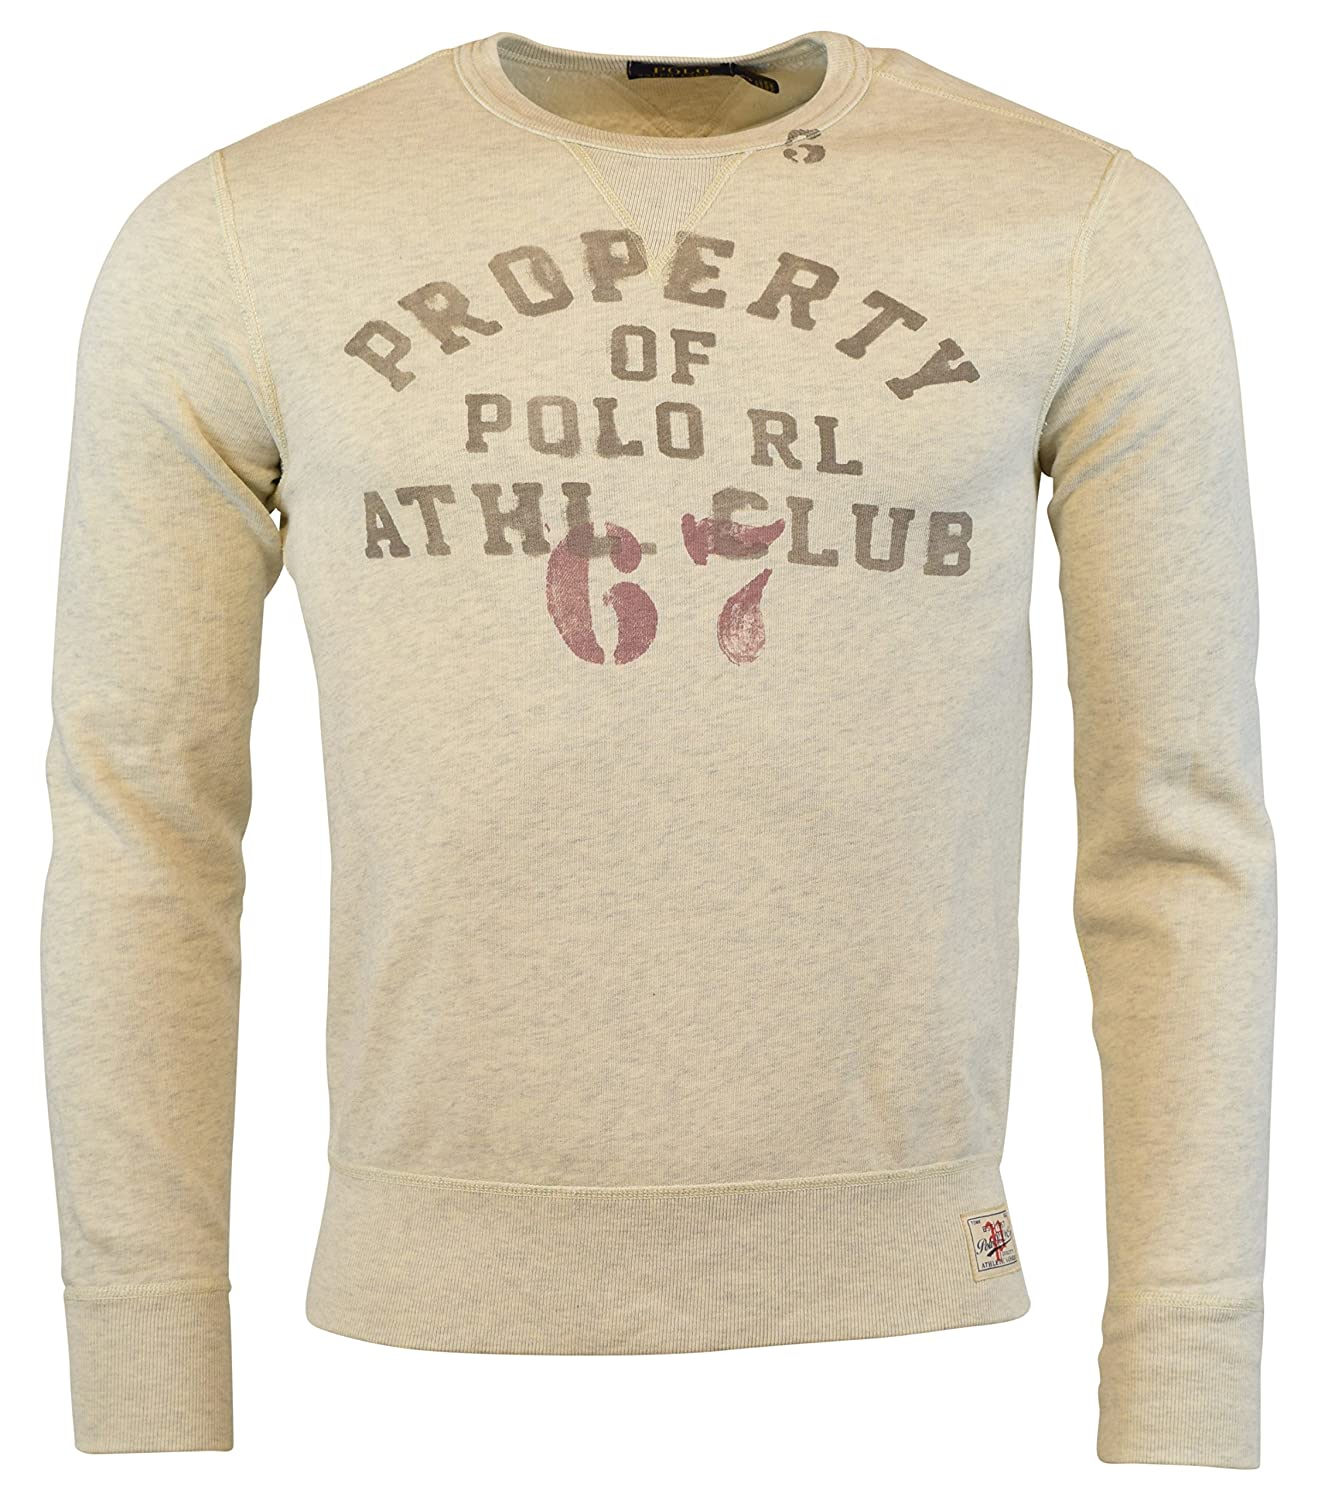 13b7ebb57871 Amazon.com  Polo Ralph Lauren Mens Athletic Club Gym Crewneck Sweatshirt  Heather Grey (XX-Large)  Clothing